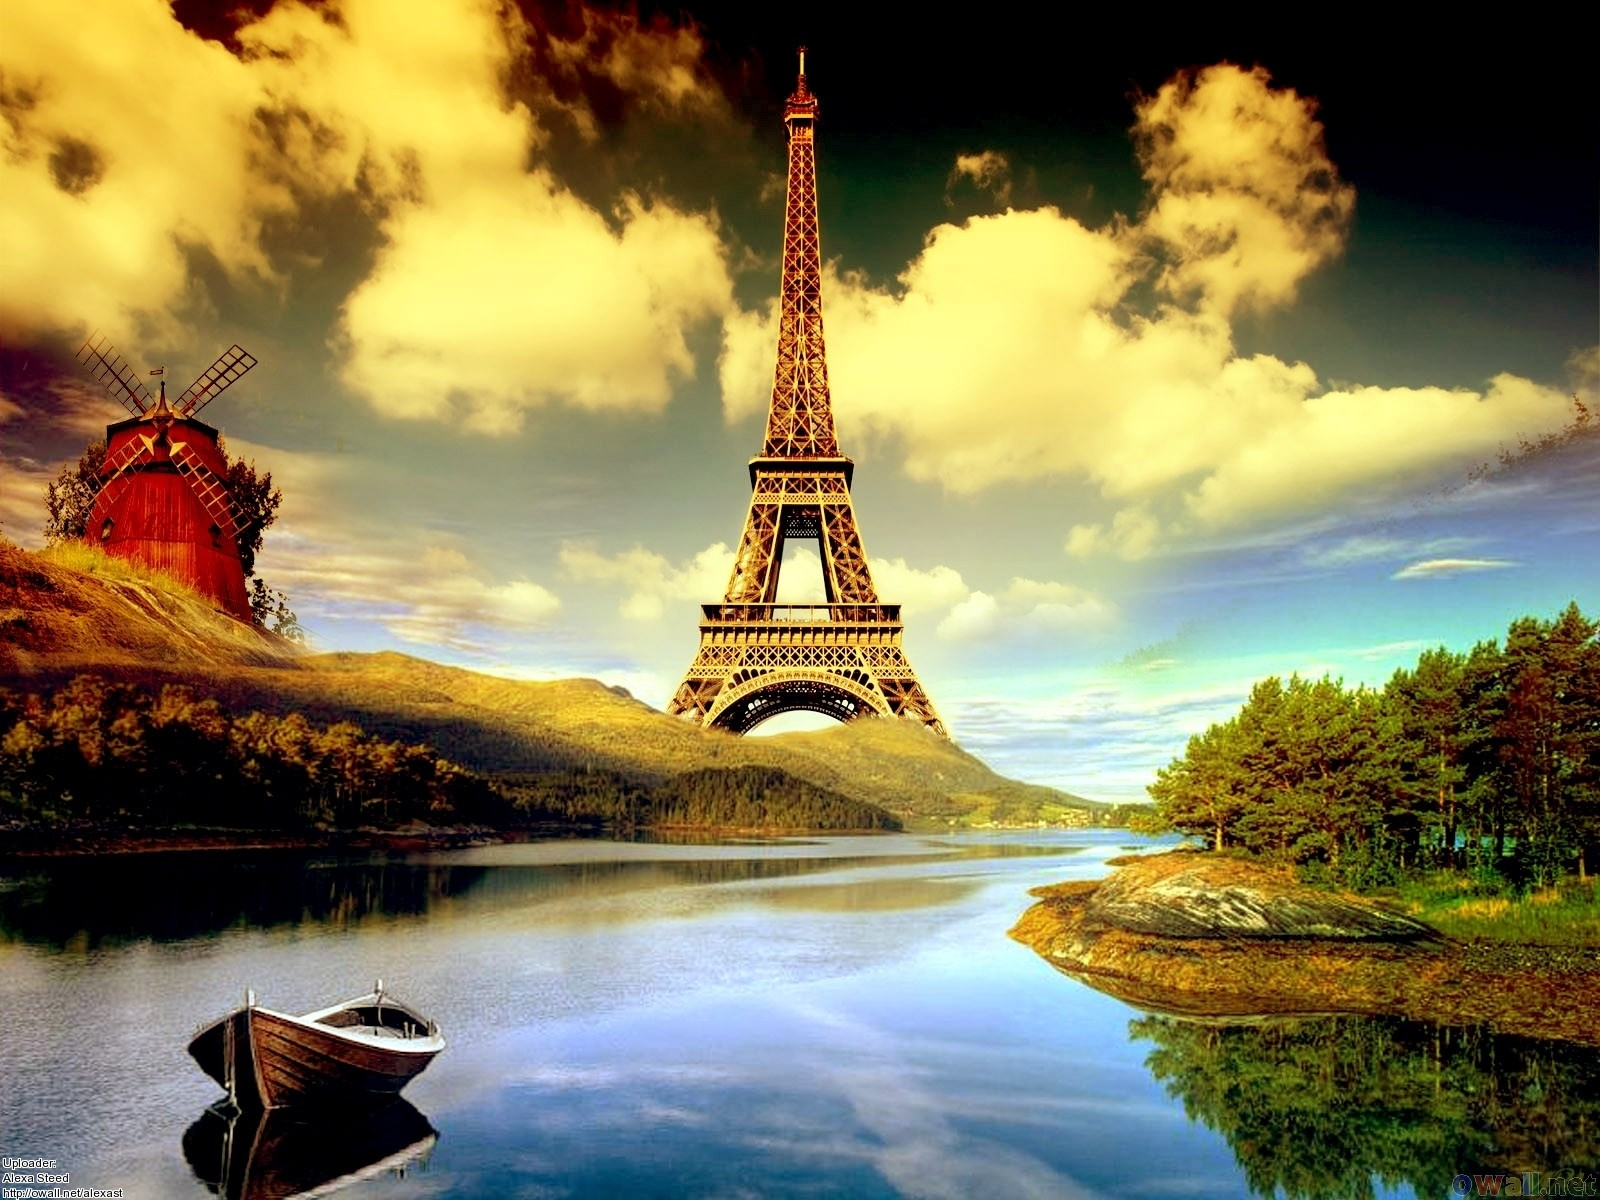 Eiffel Tower Wallpaper and Background | 1600x1200 | ID:199218